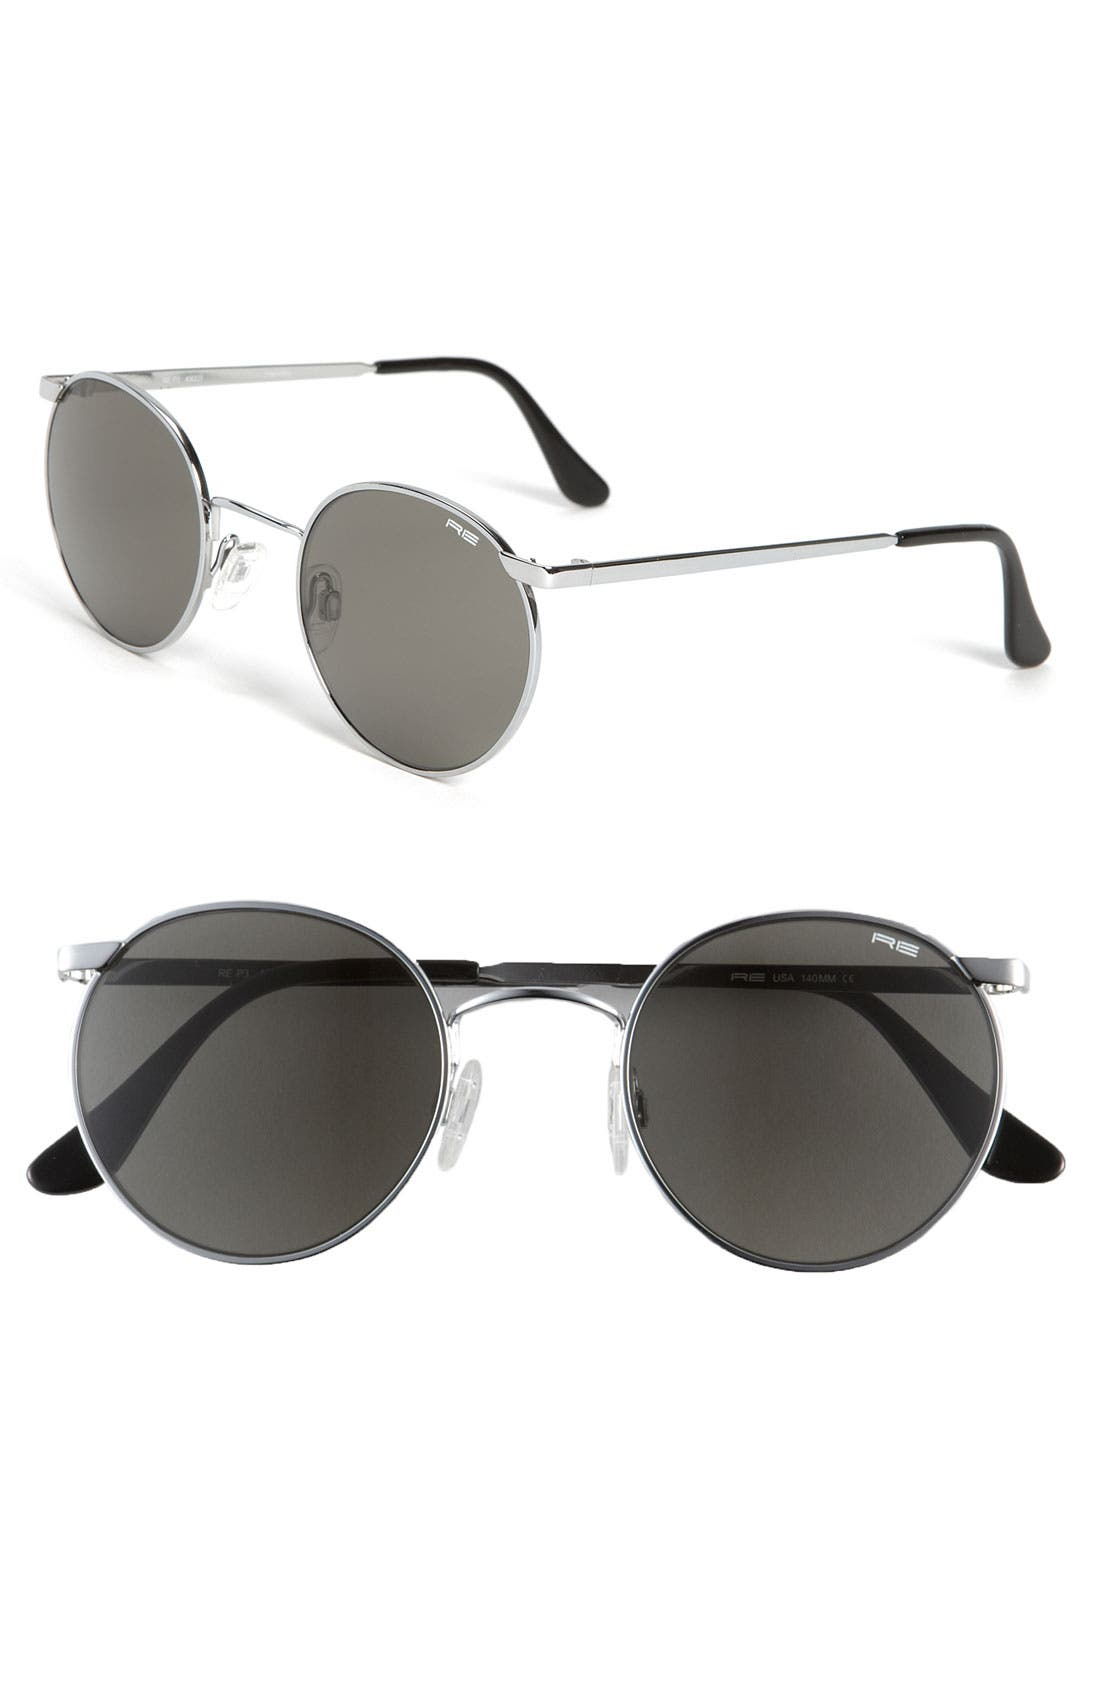 Main Image - Randolph Engineering 'P3 Retro' 49mm Sunglasses